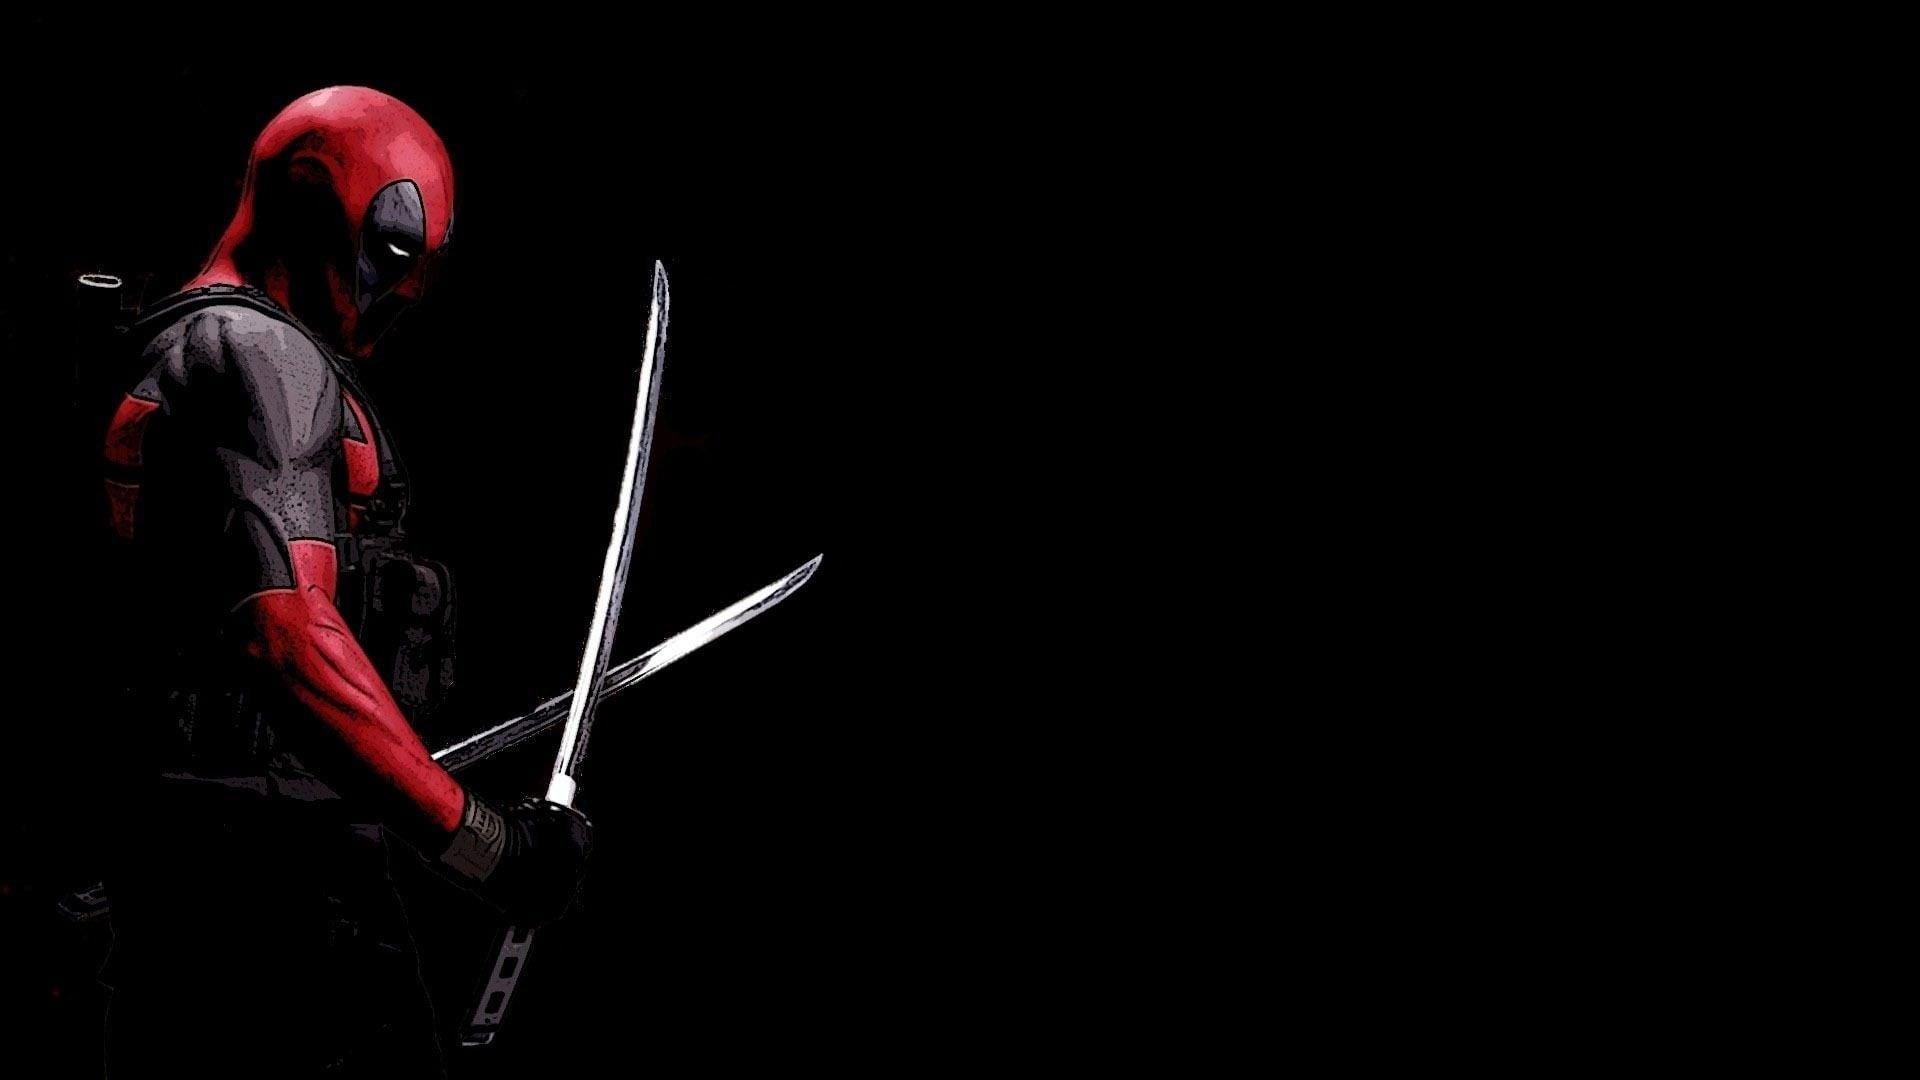 4k deadpool wallpapers top free 4k deadpool backgrounds for Deadpool wallpaper 1920x1080